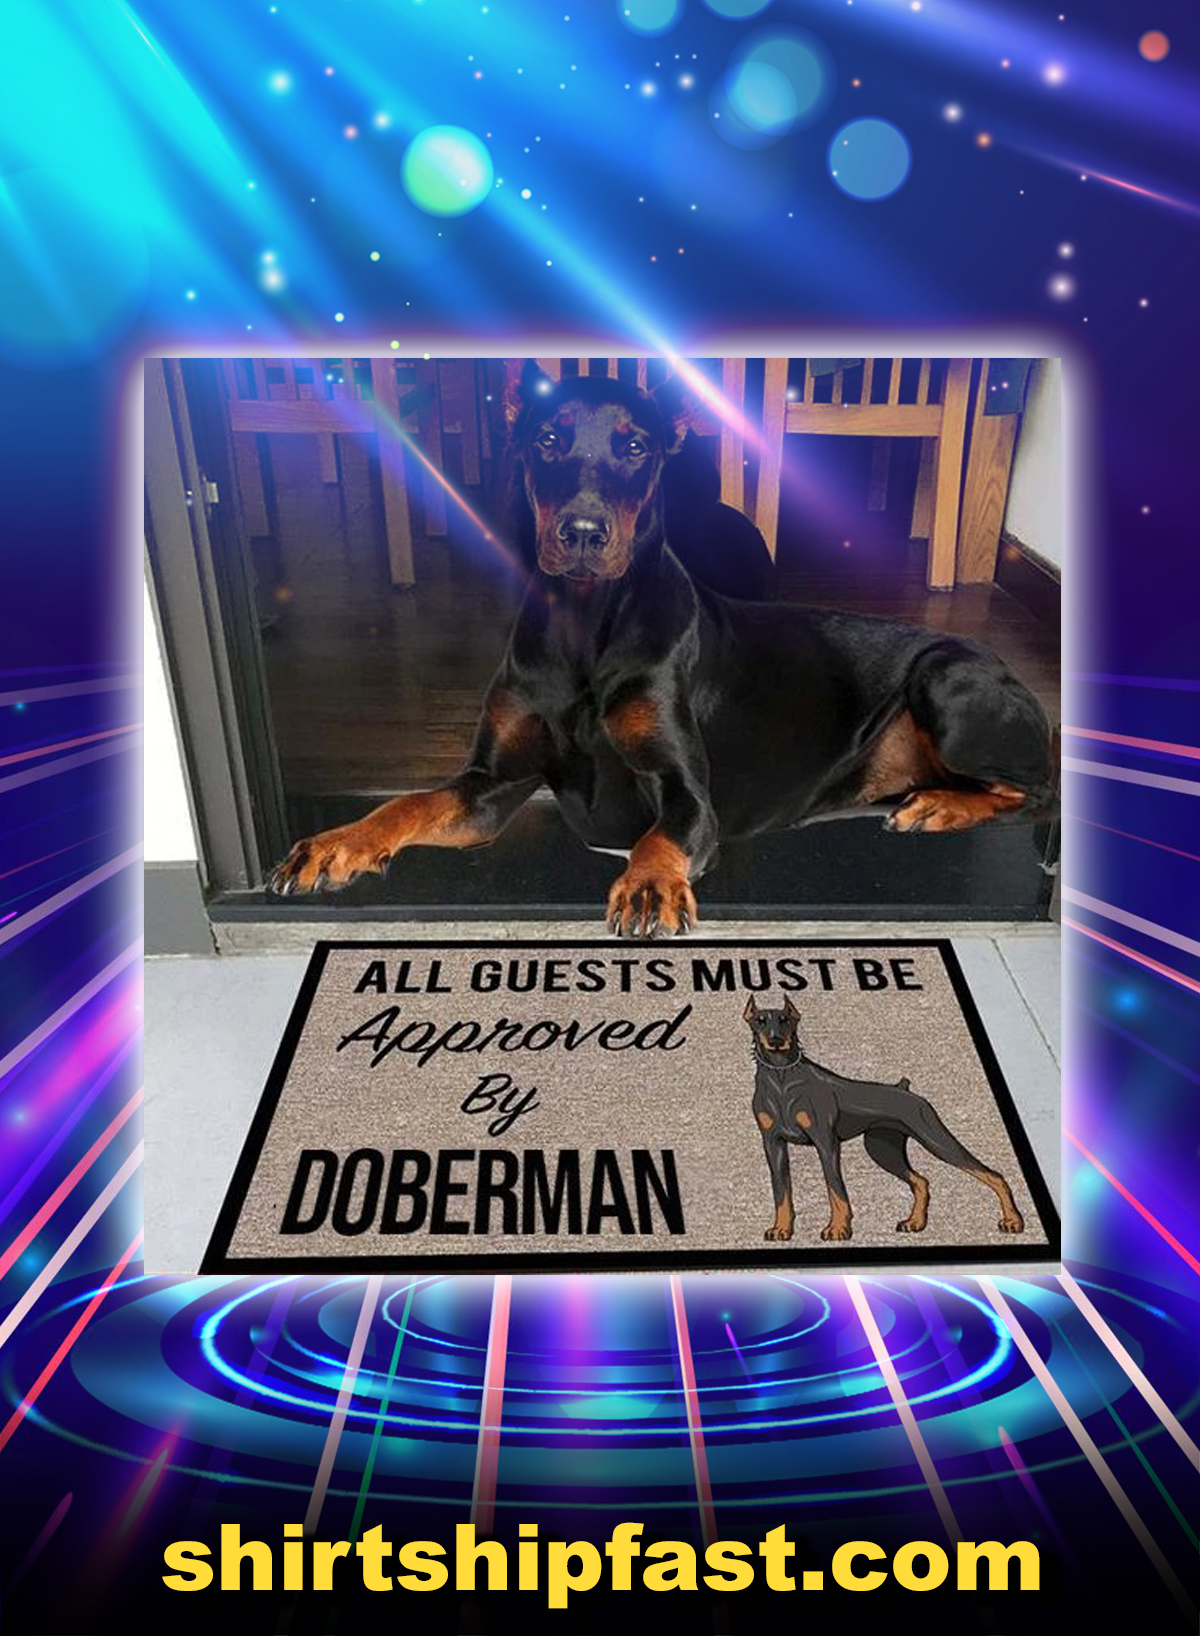 All guests must be approved by doberman doormat - Picture 1